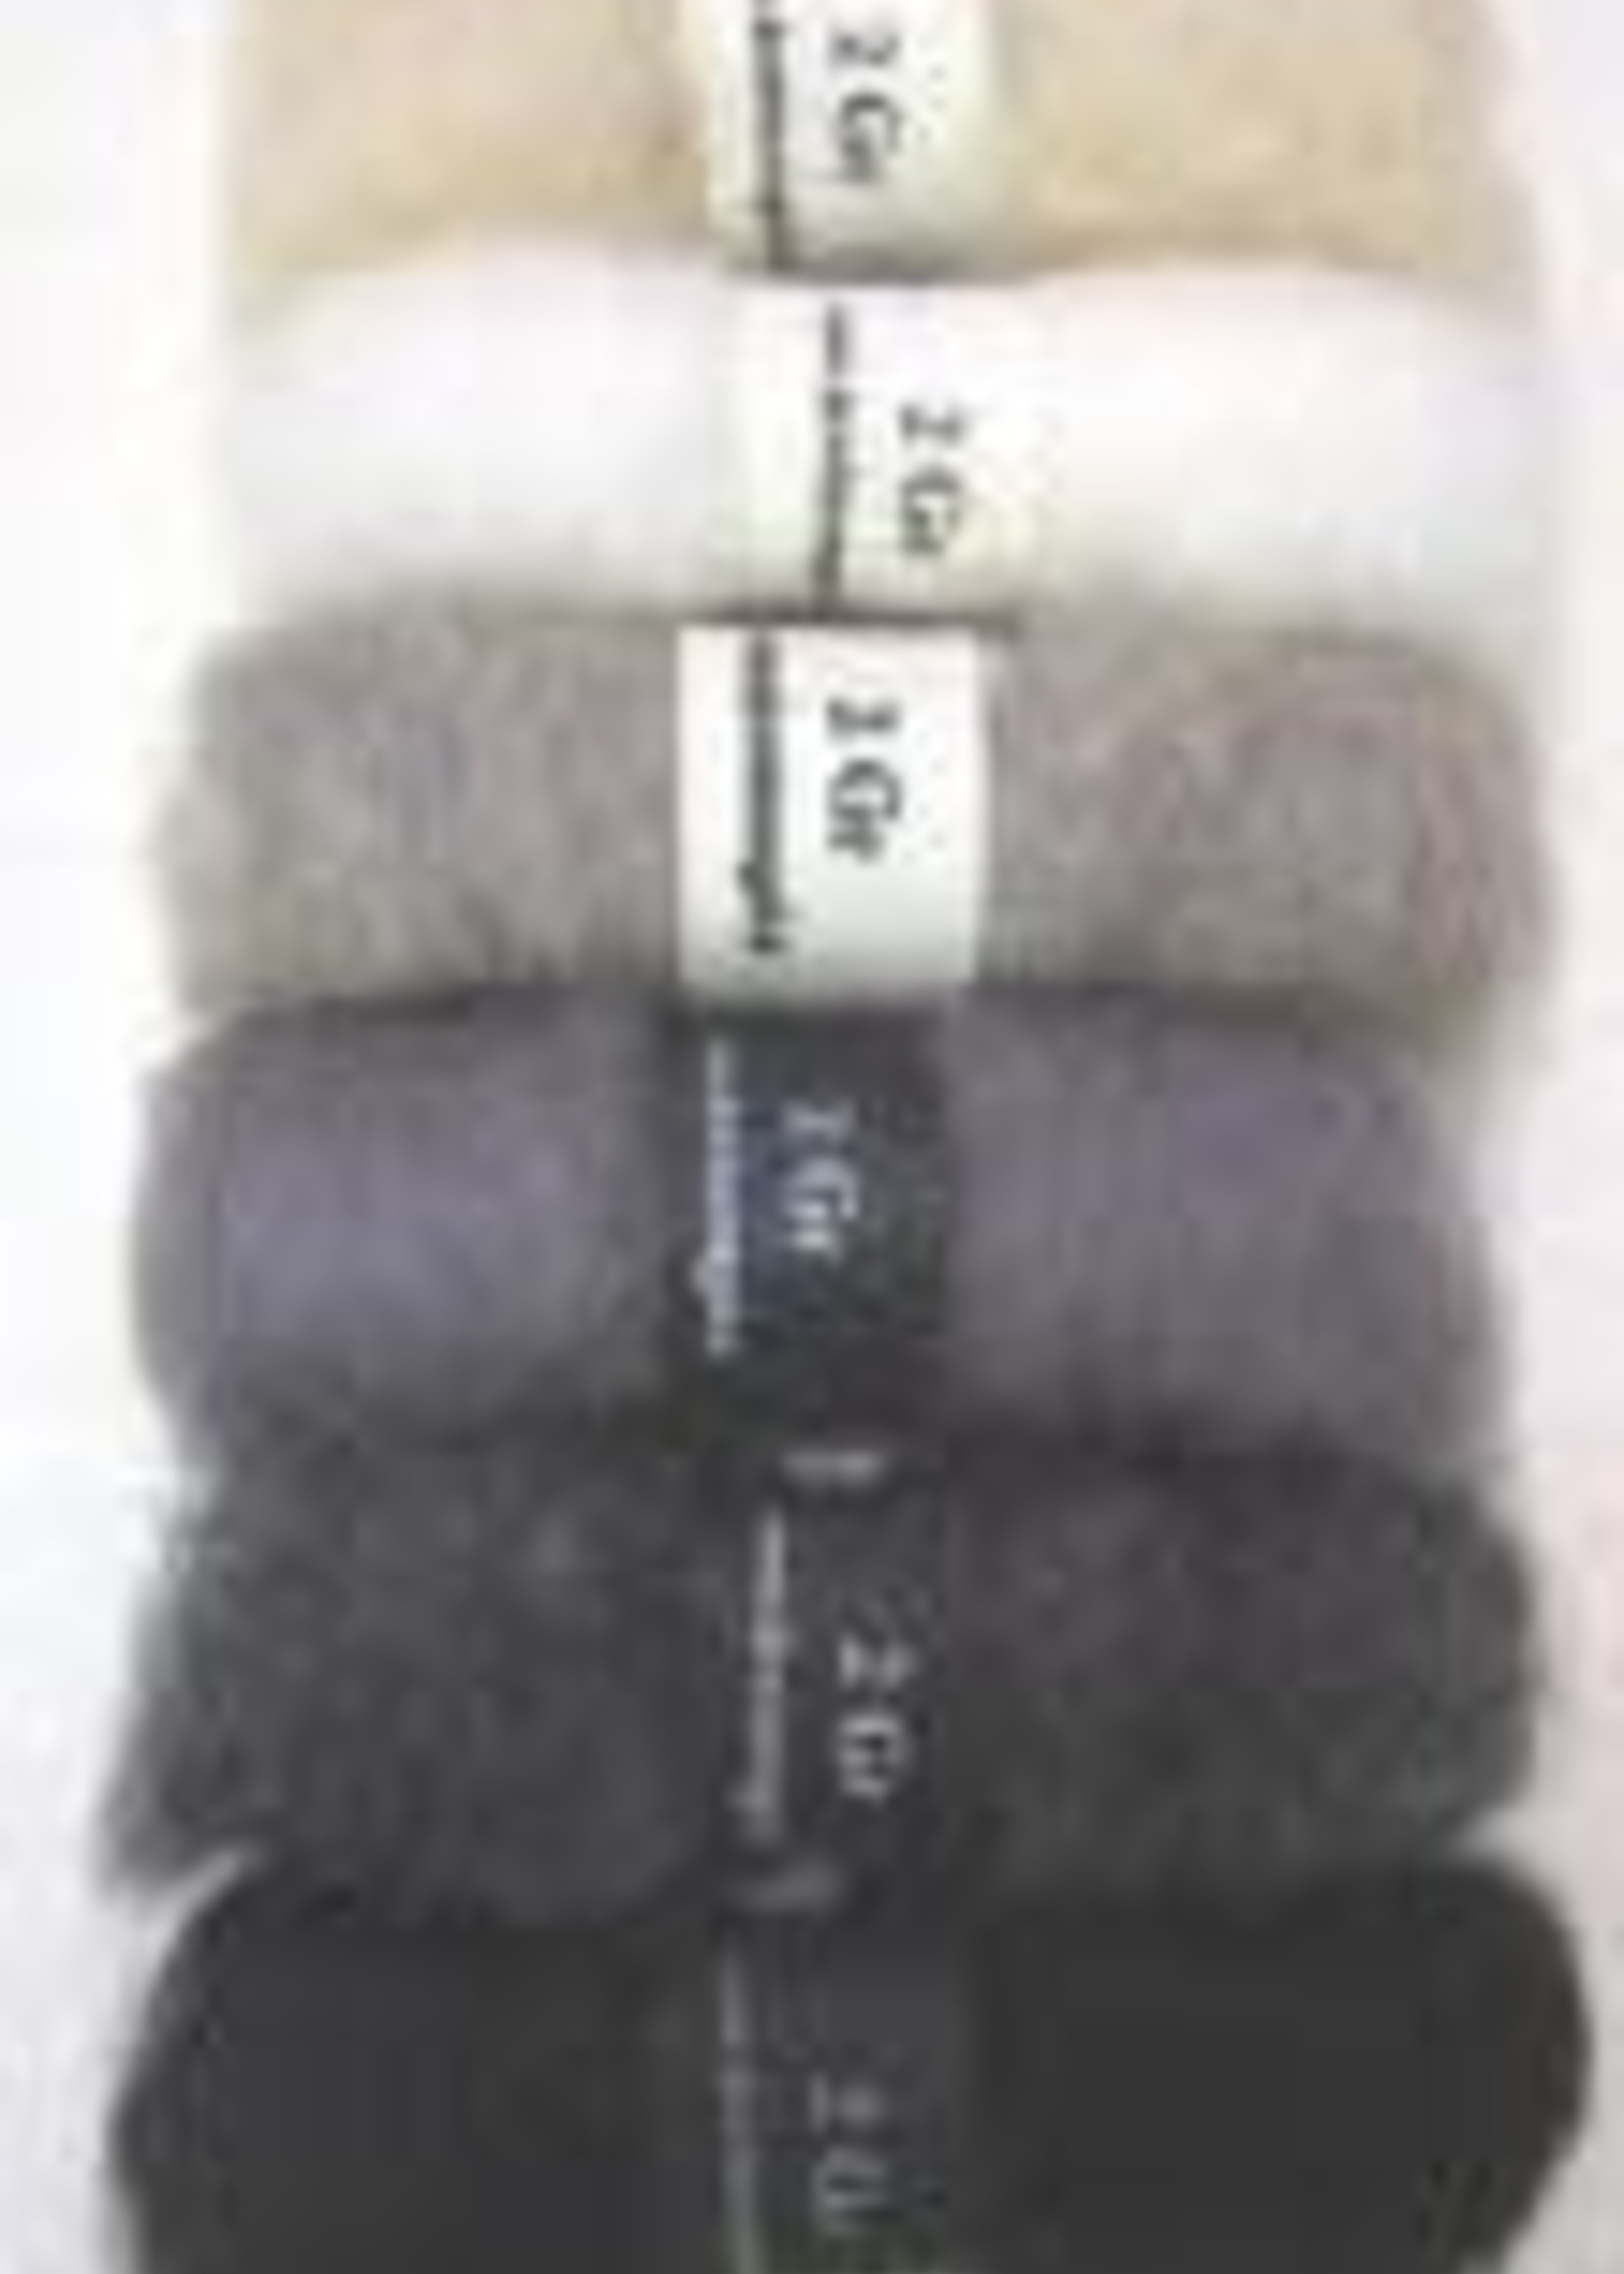 Bhedawool Bhedawool Mini Pack Neutrals - #0750